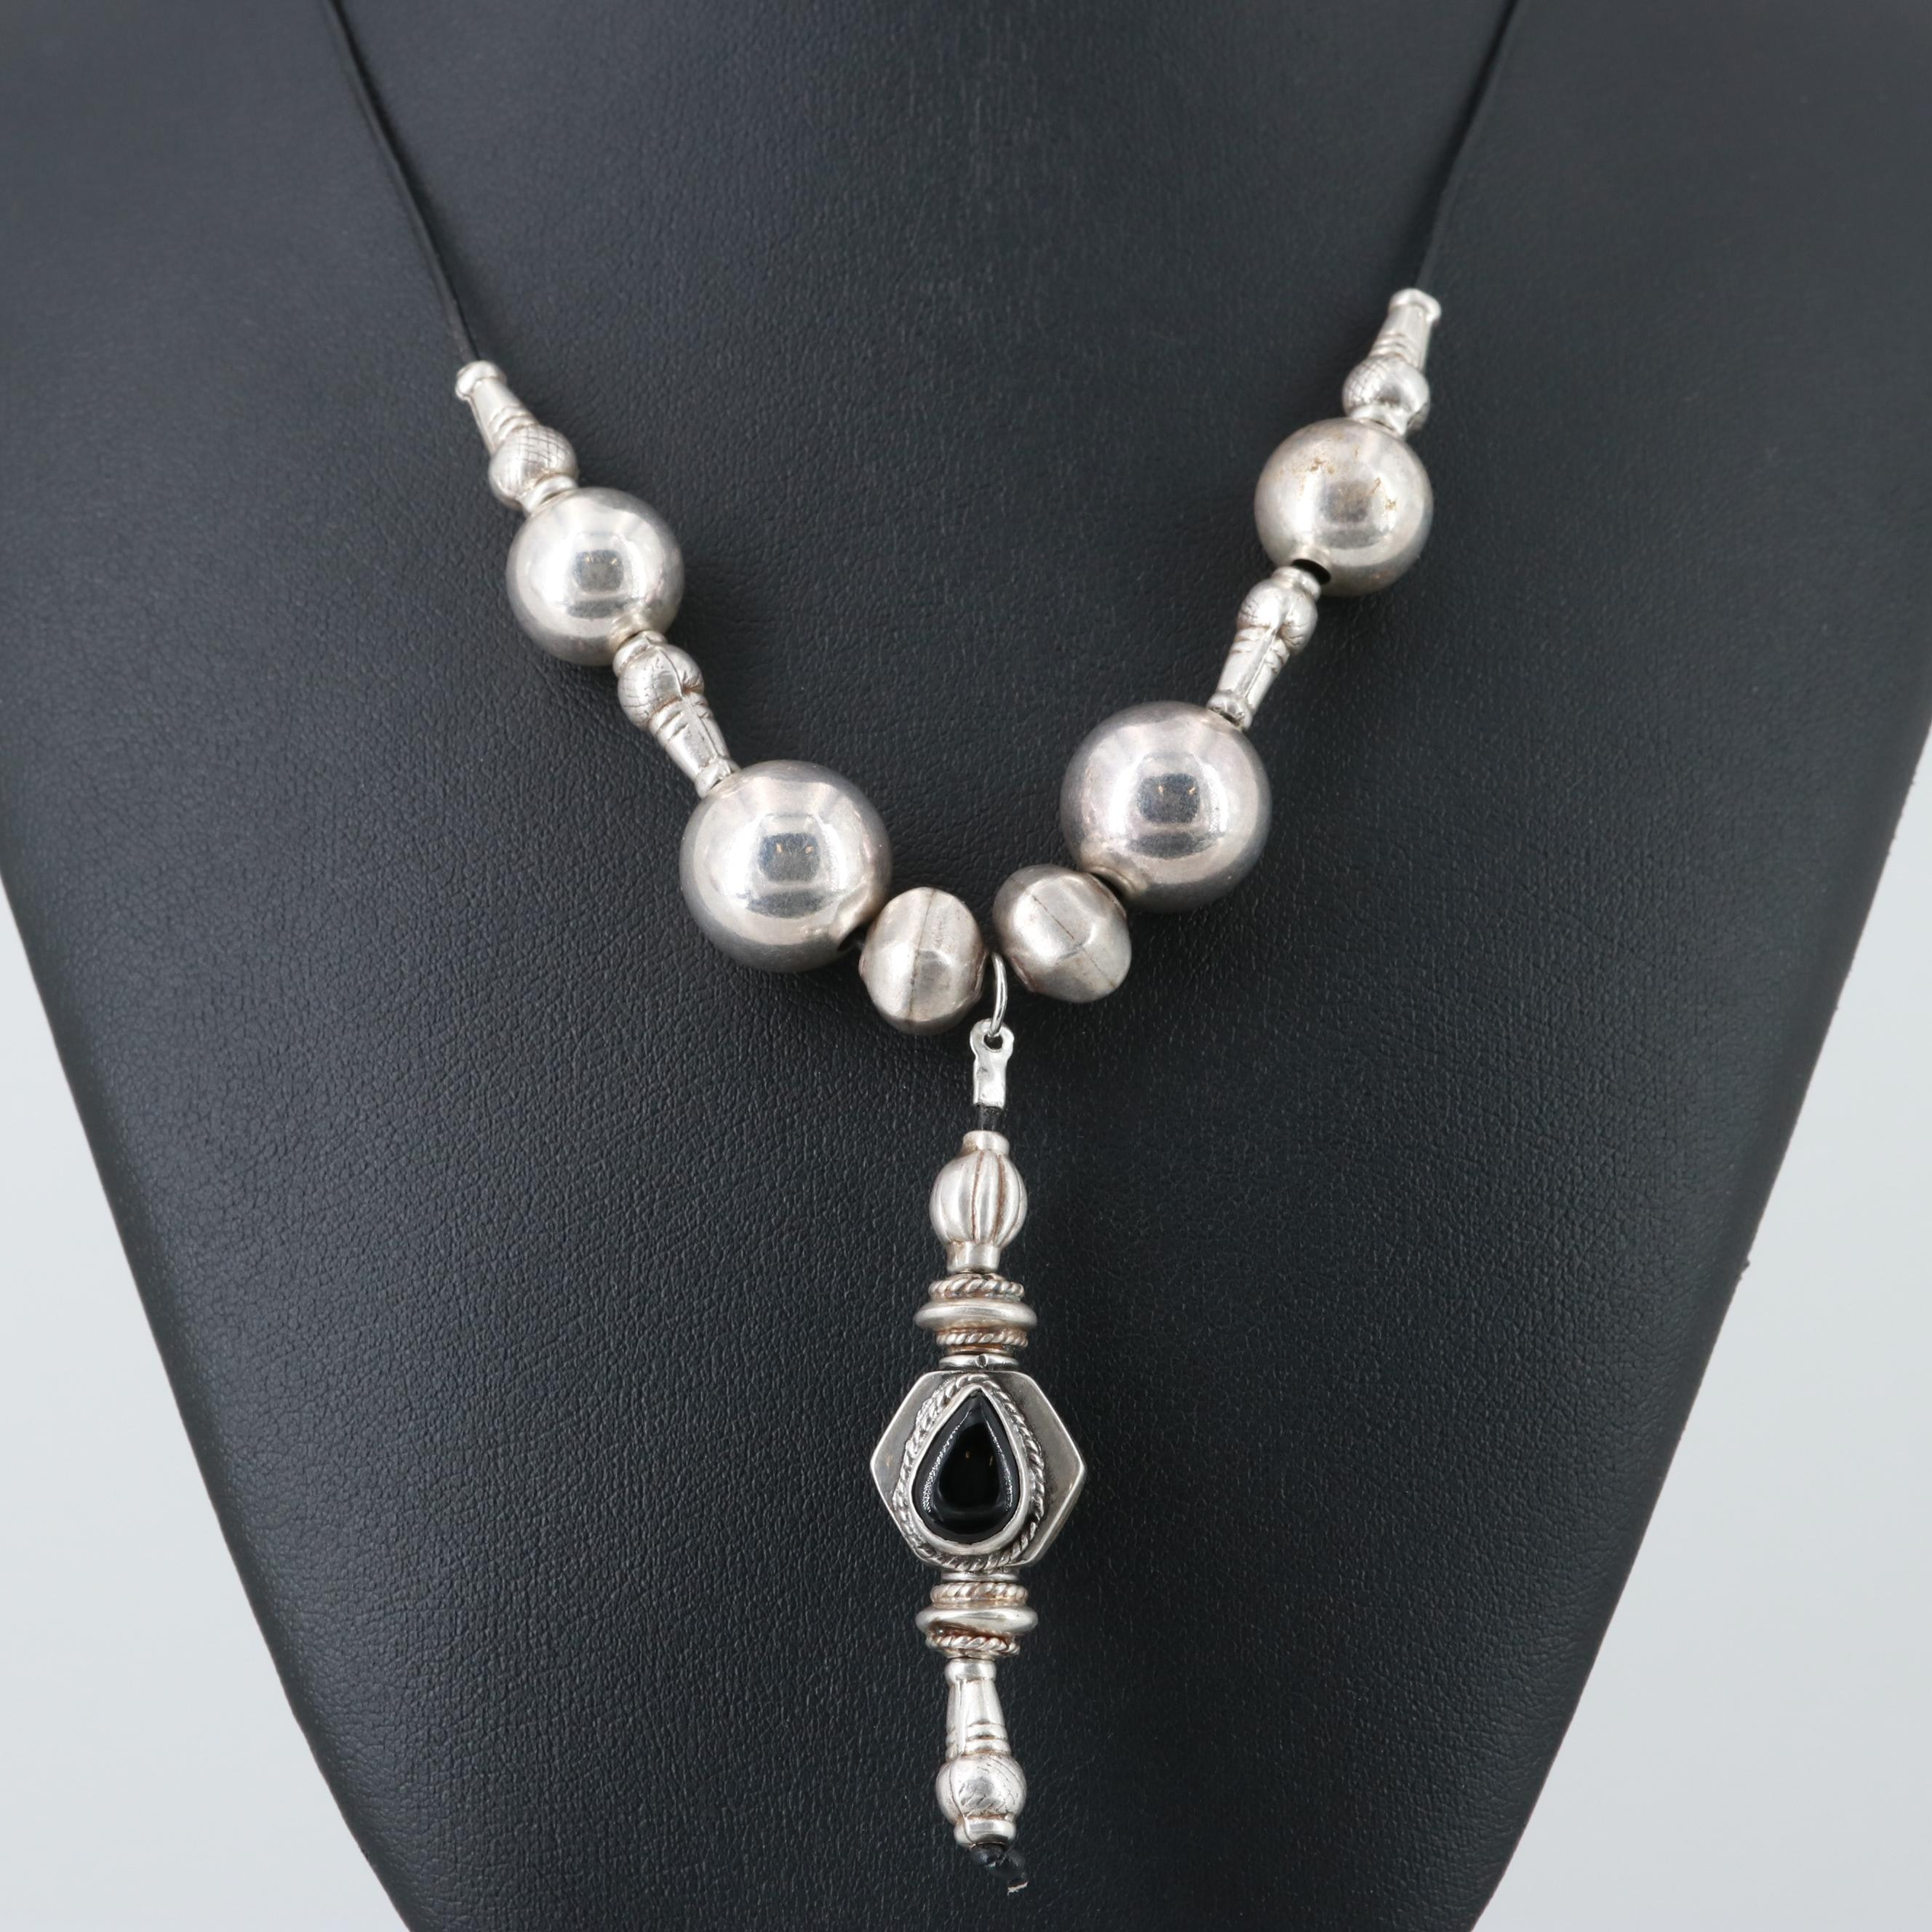 Sterling Silver Beaded Necklace with Black Onyx Pendant